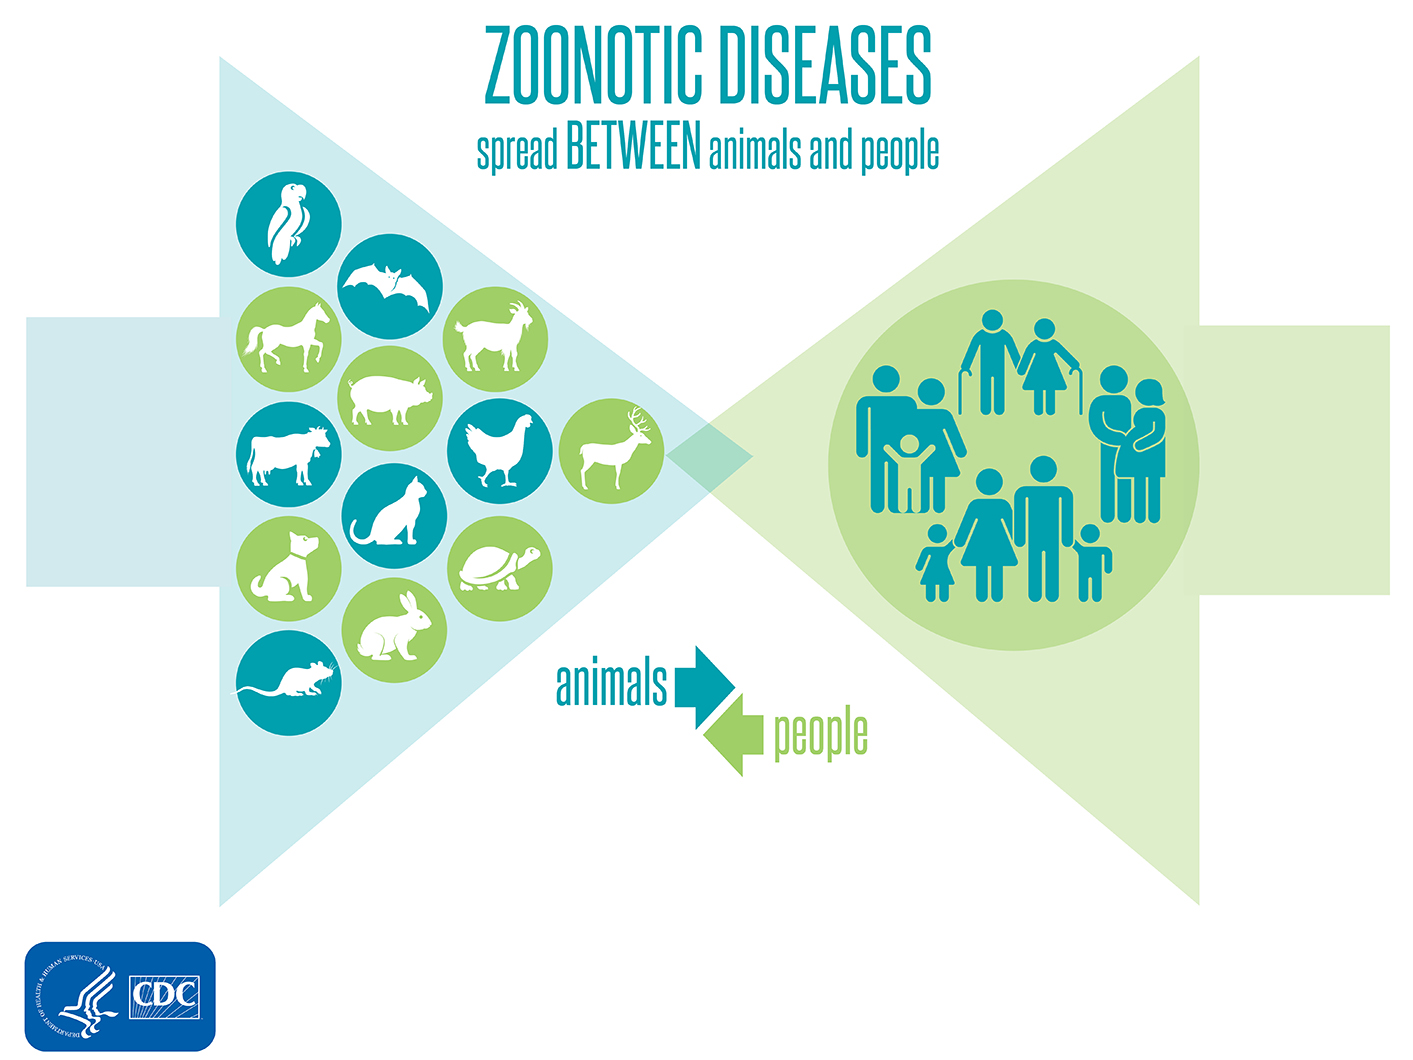 zoonotic diseases spread between animals and people